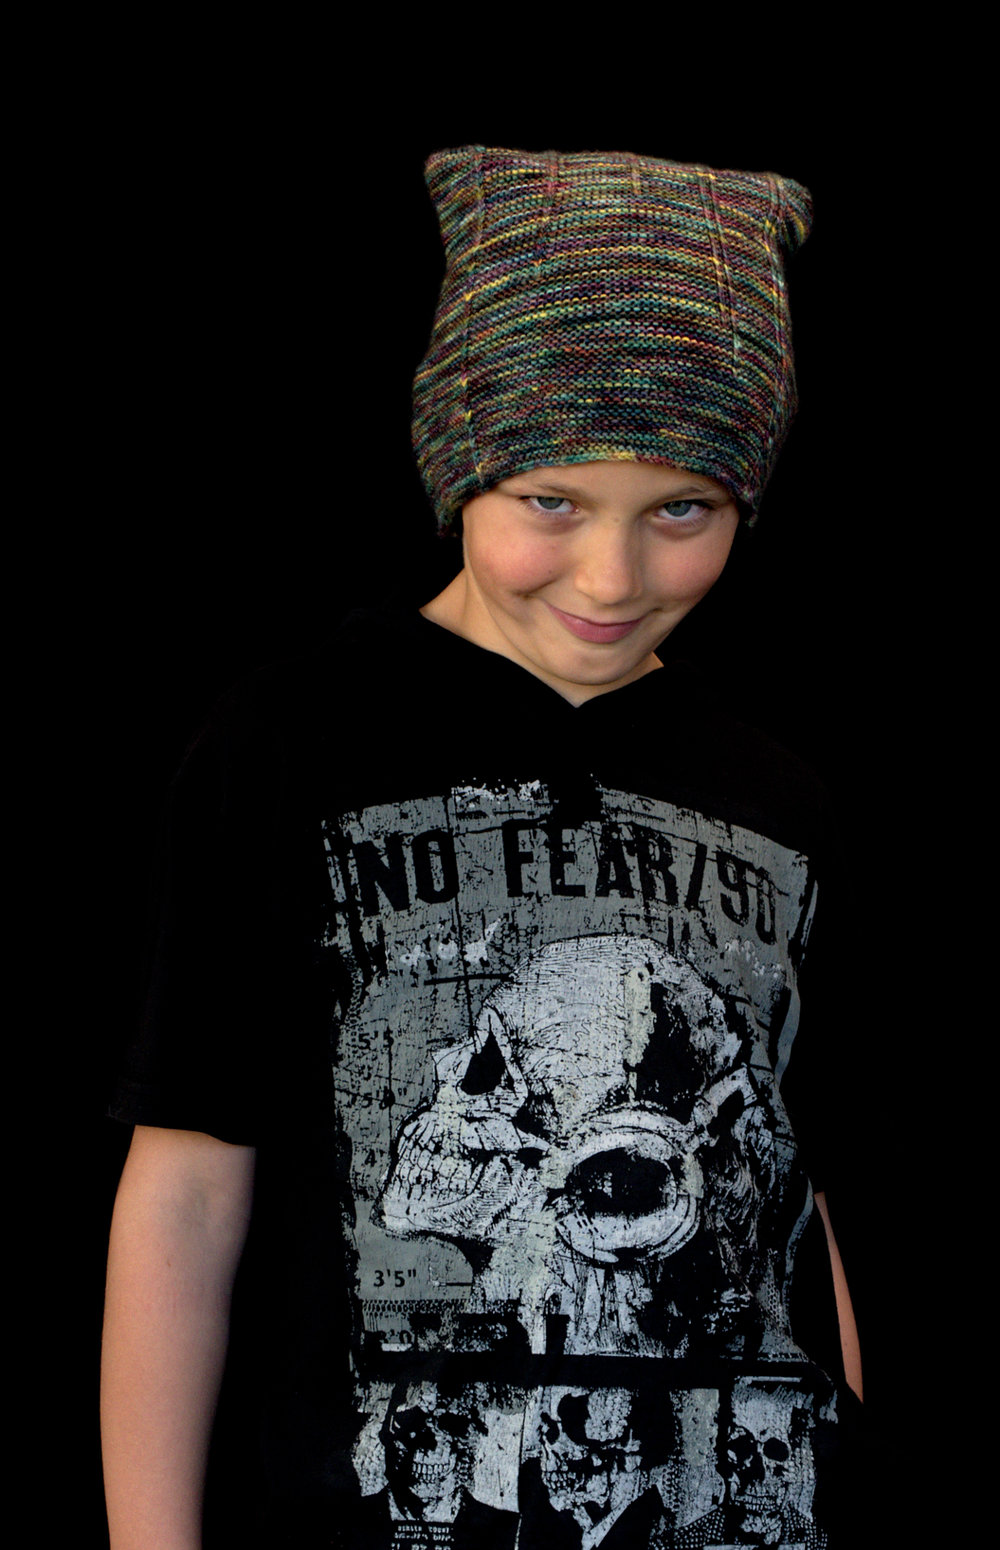 Allerton hand knitting pattern for skater style Hat